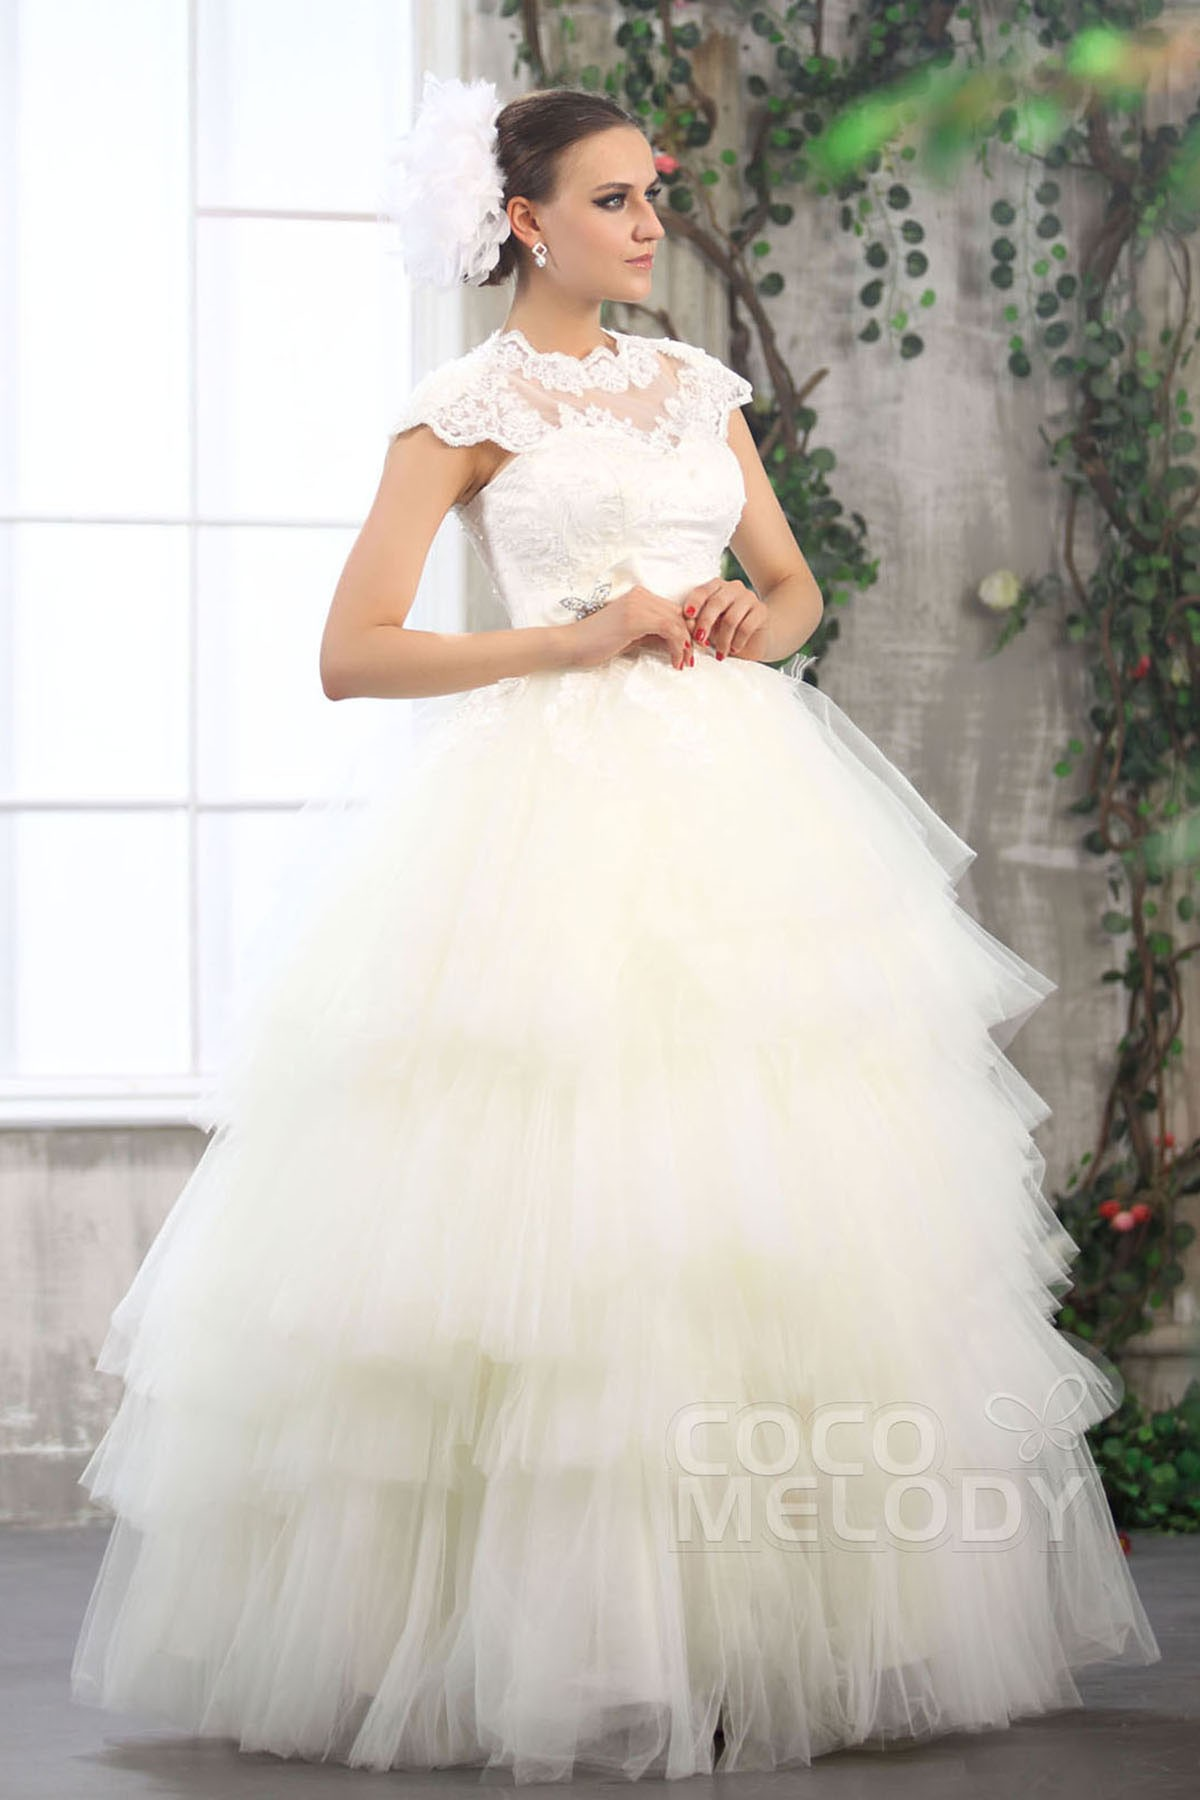 Ball Gown Floor Length Tulle Wedding Dress CWXF13003 | Cocomelody